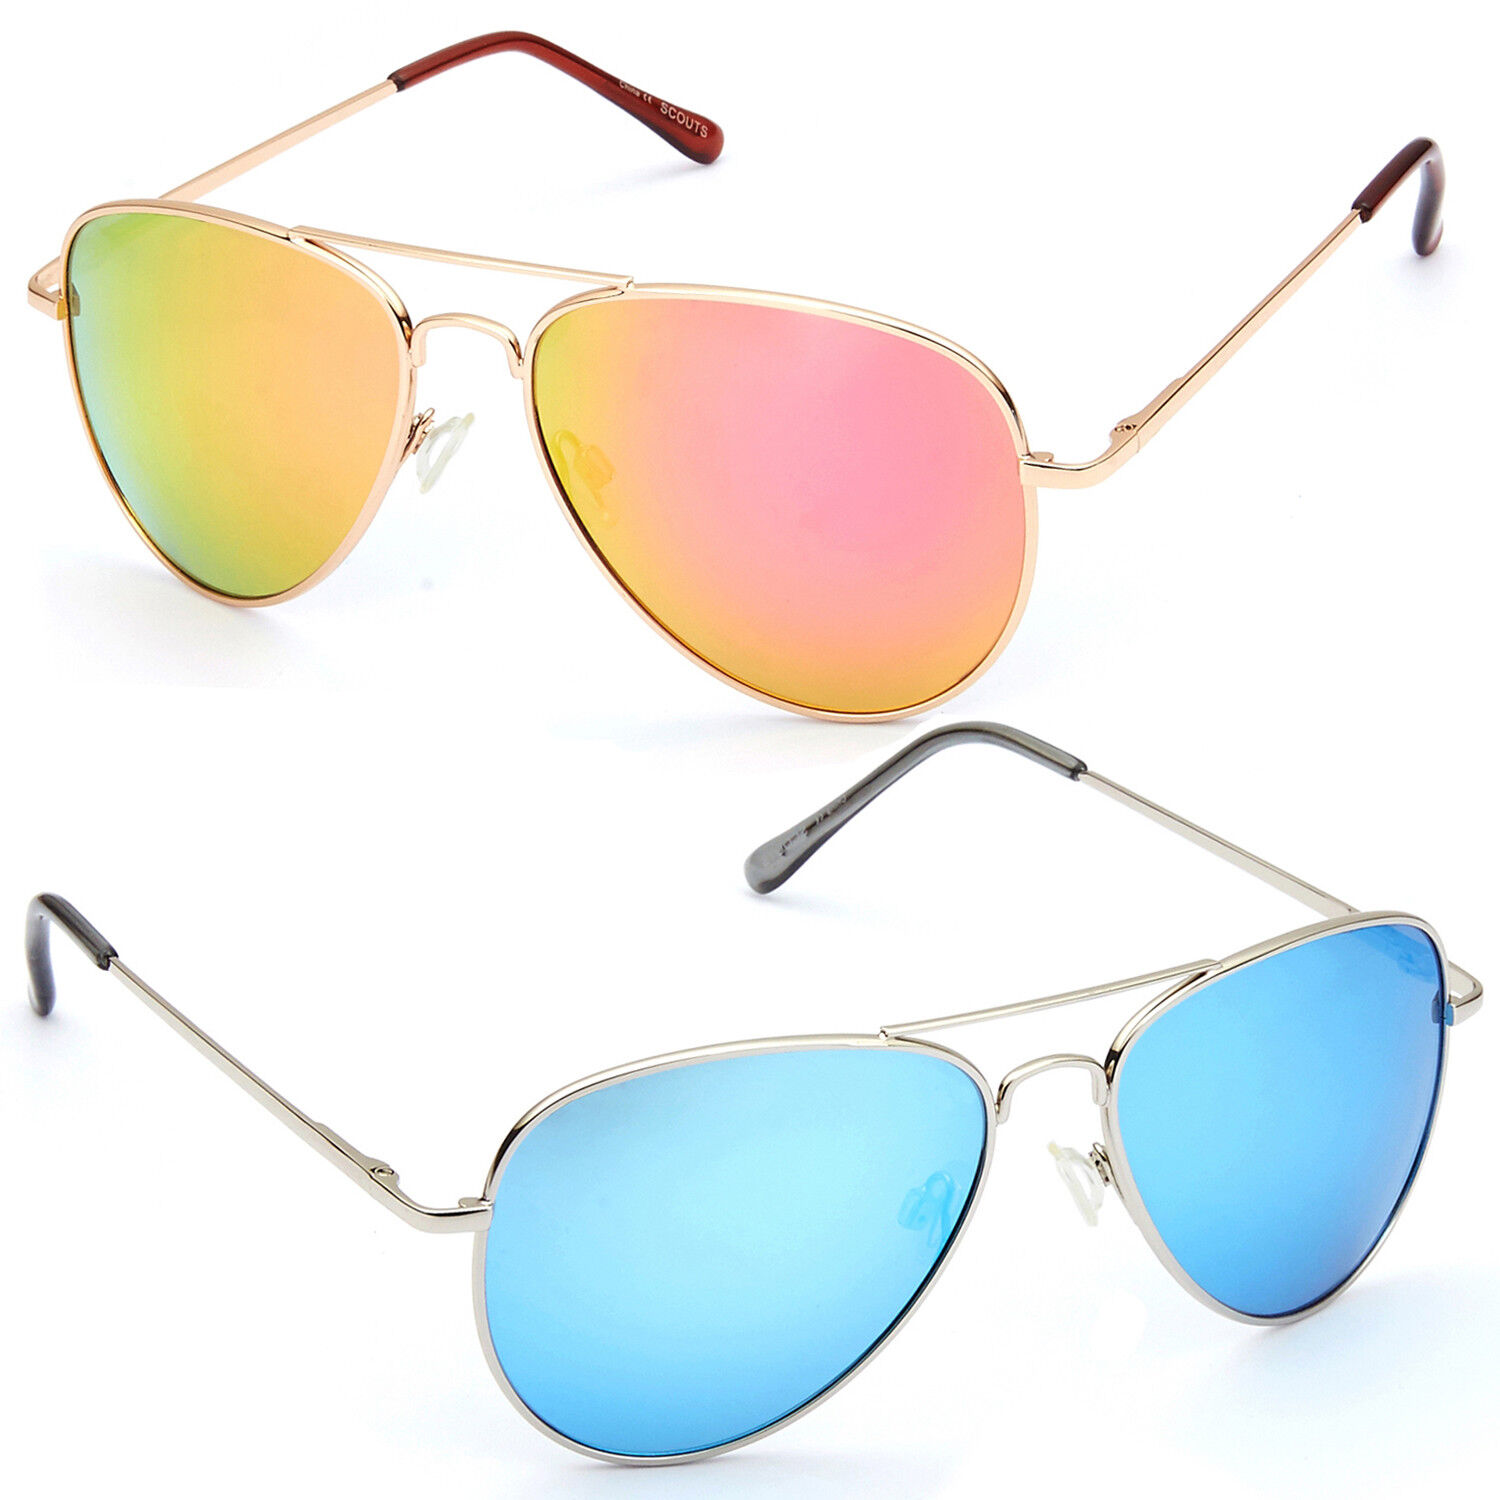 96d0bad8bc Polarized Aviator Sunglasses for Women Men Vintage Sports Driving Mirrored